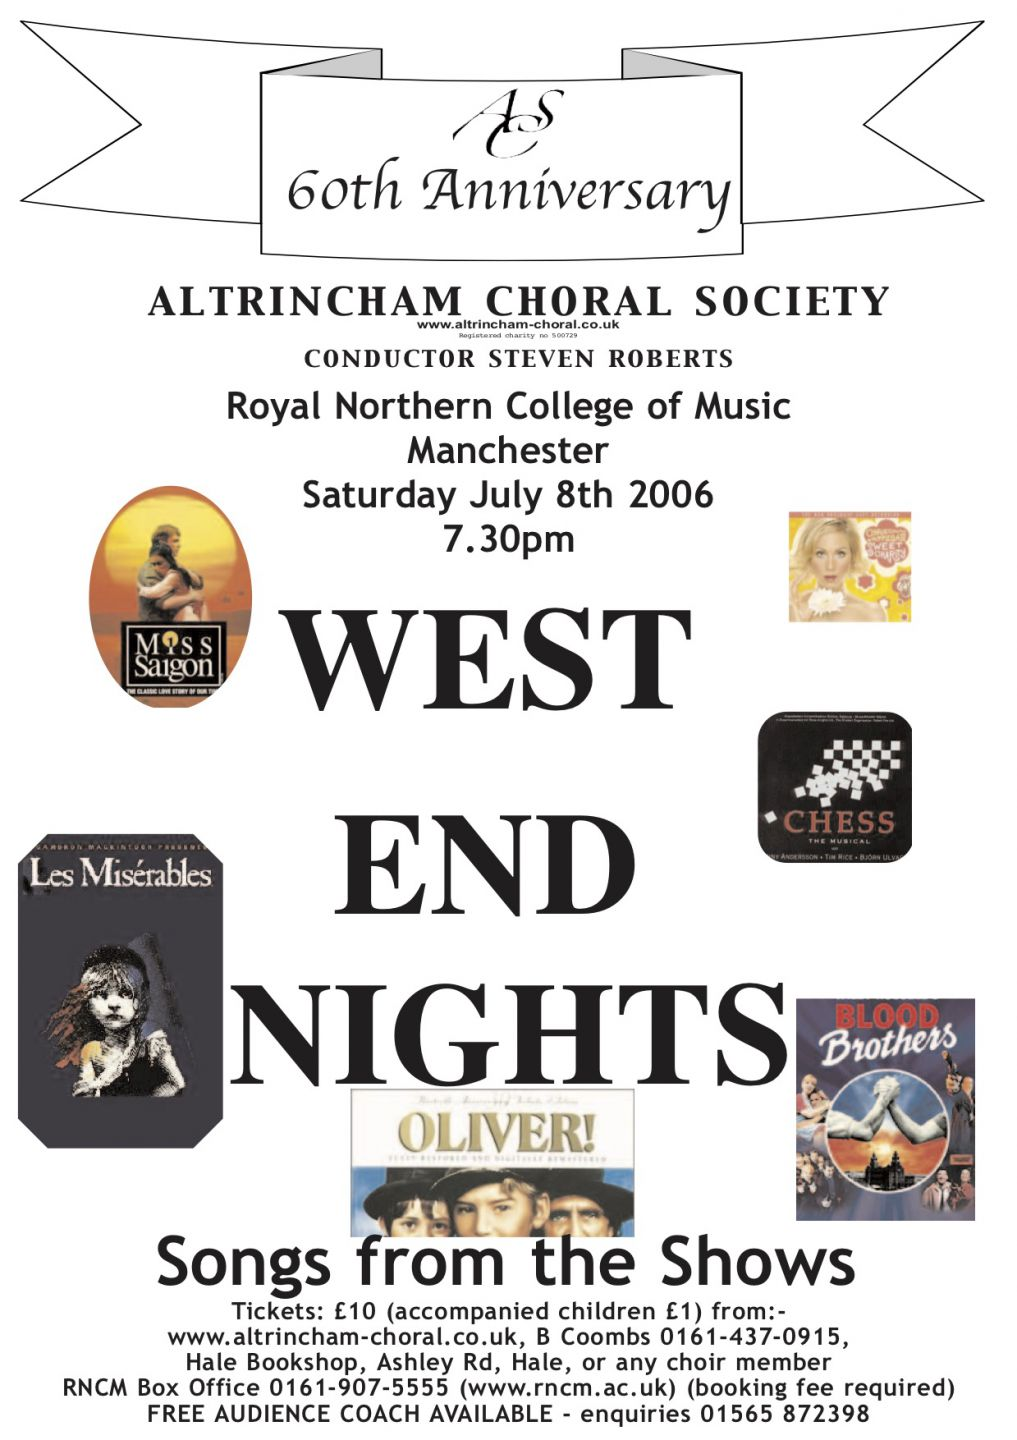 West-End-Nights-Songs-from-the-Shows